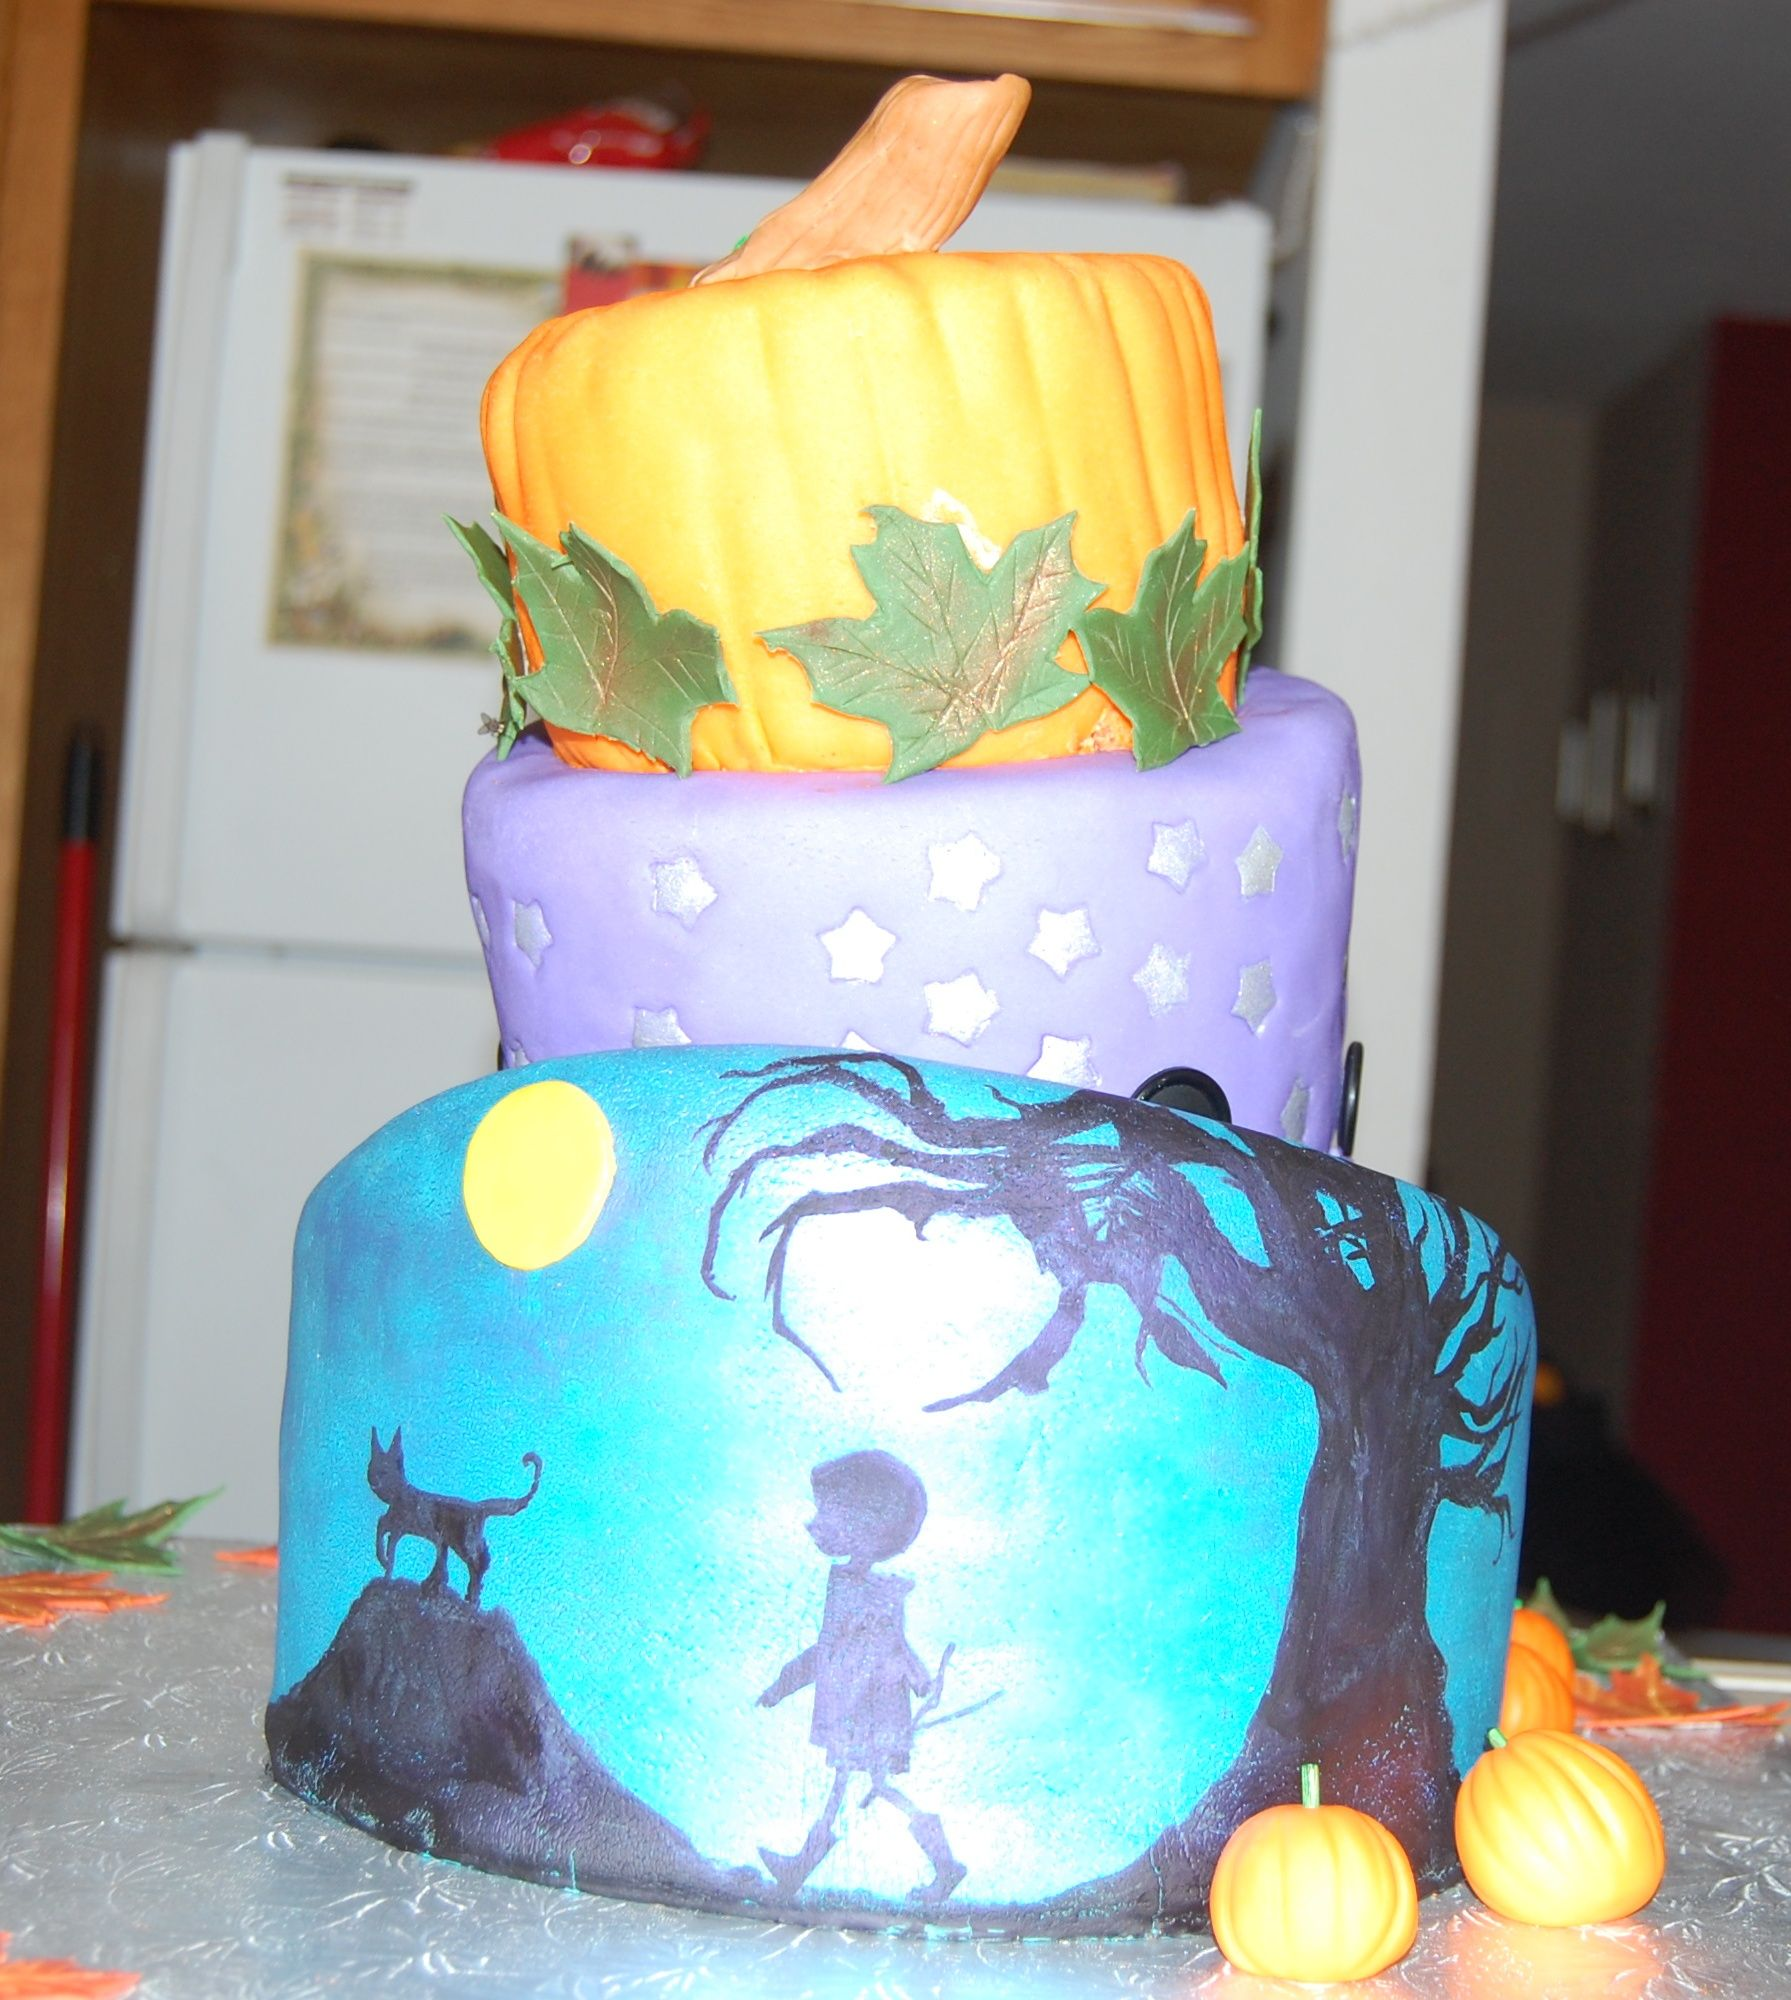 Coraline+Birthday+Cake+-+This+was+my+first+tiered+cake.+I+made+it+ ...